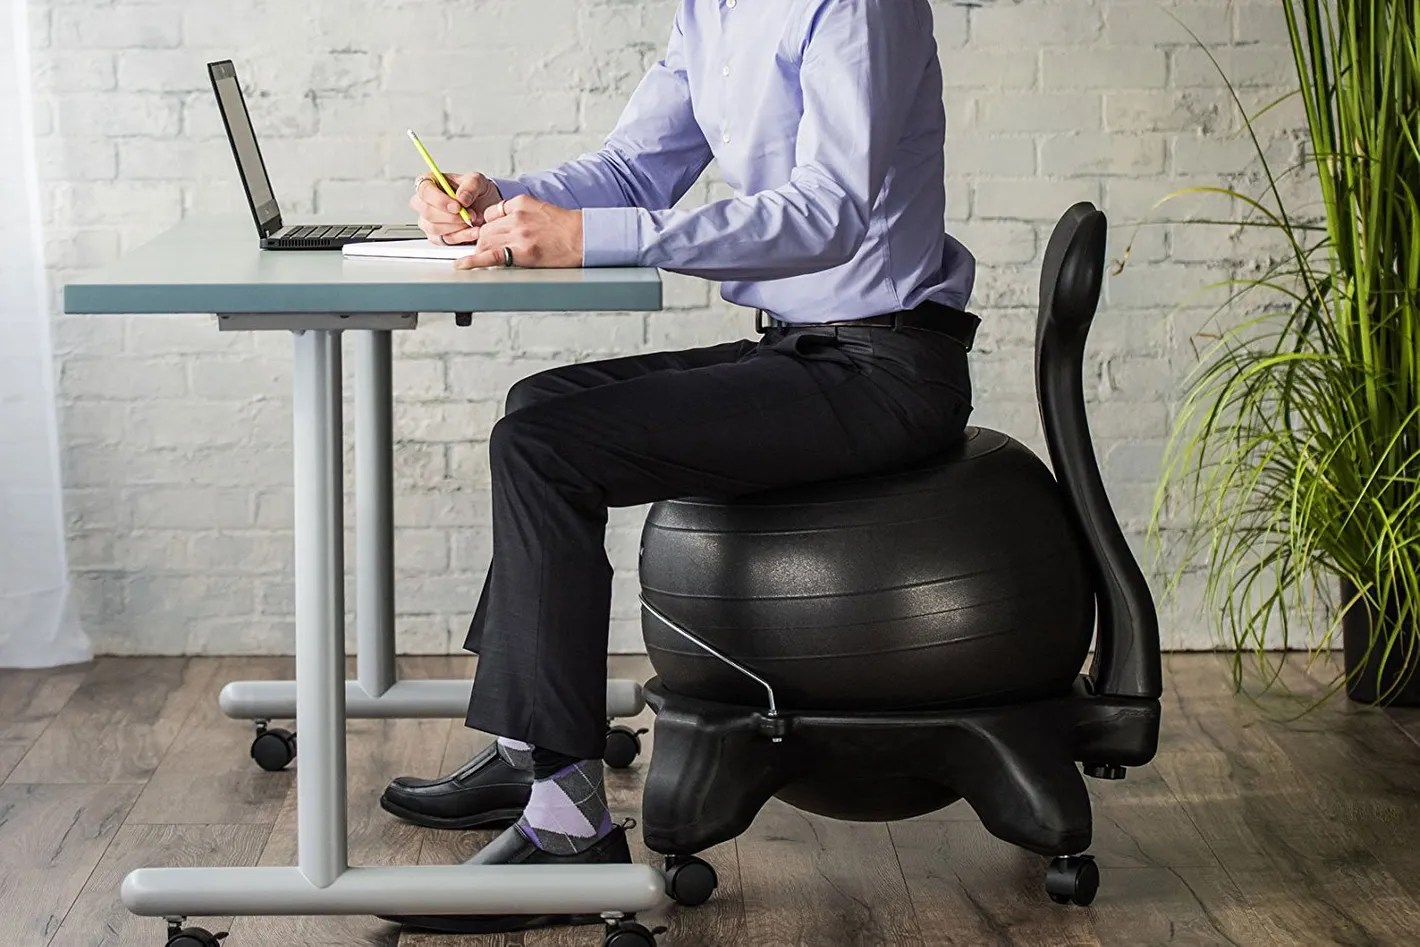 Most Ergonomic Office Chair 9 Best Ergonomic Office Chairs According To Doctors 2018